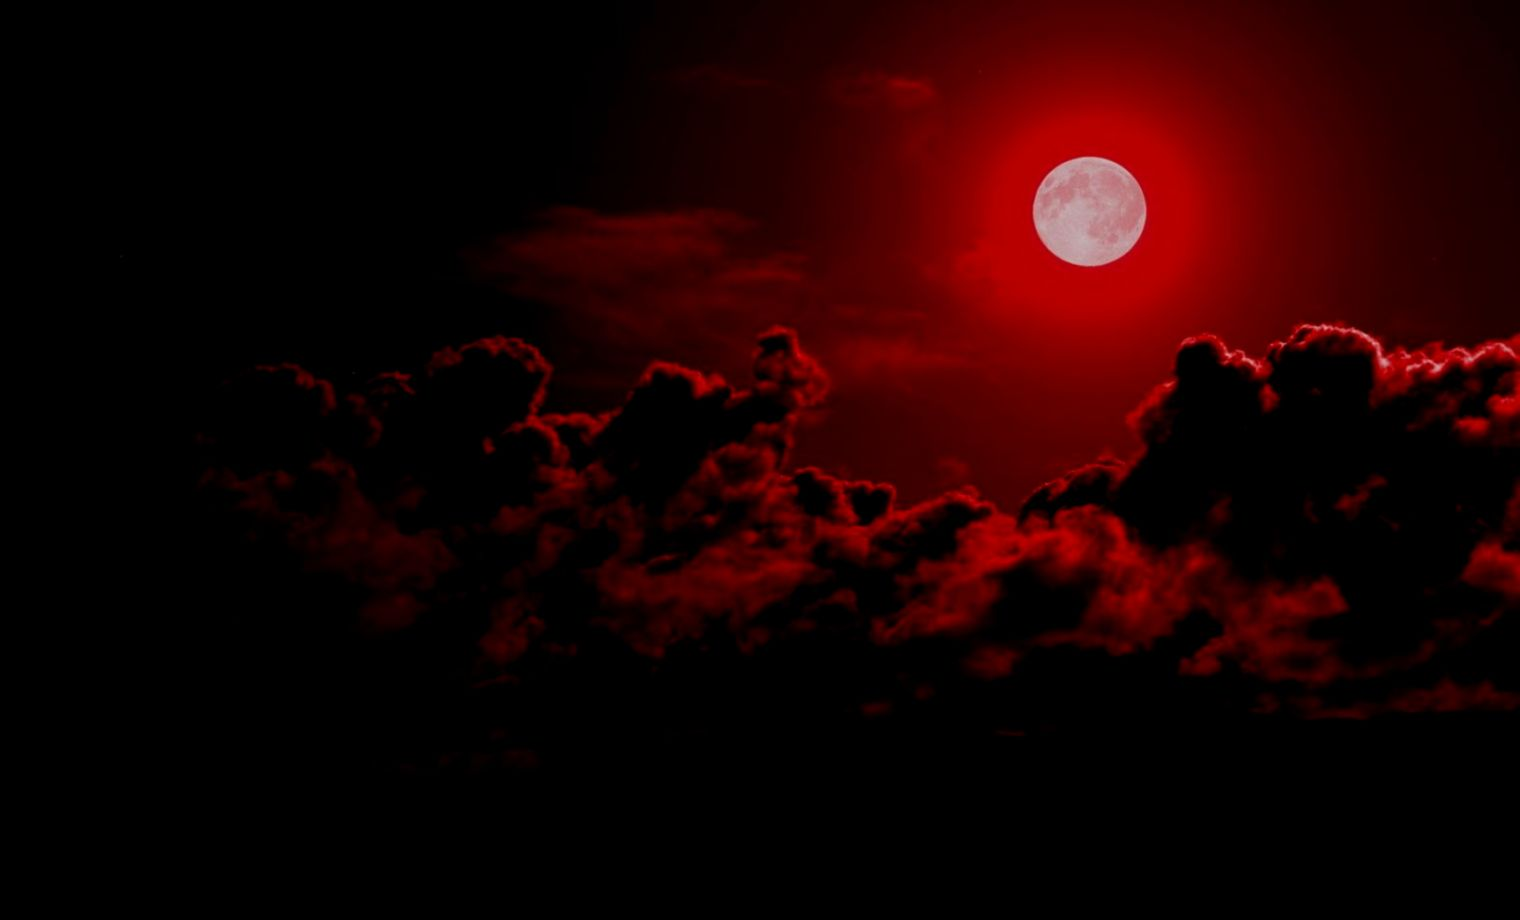 Wallpaper Hd 1080P Black And White Moon Super Wallpapers 1520x920